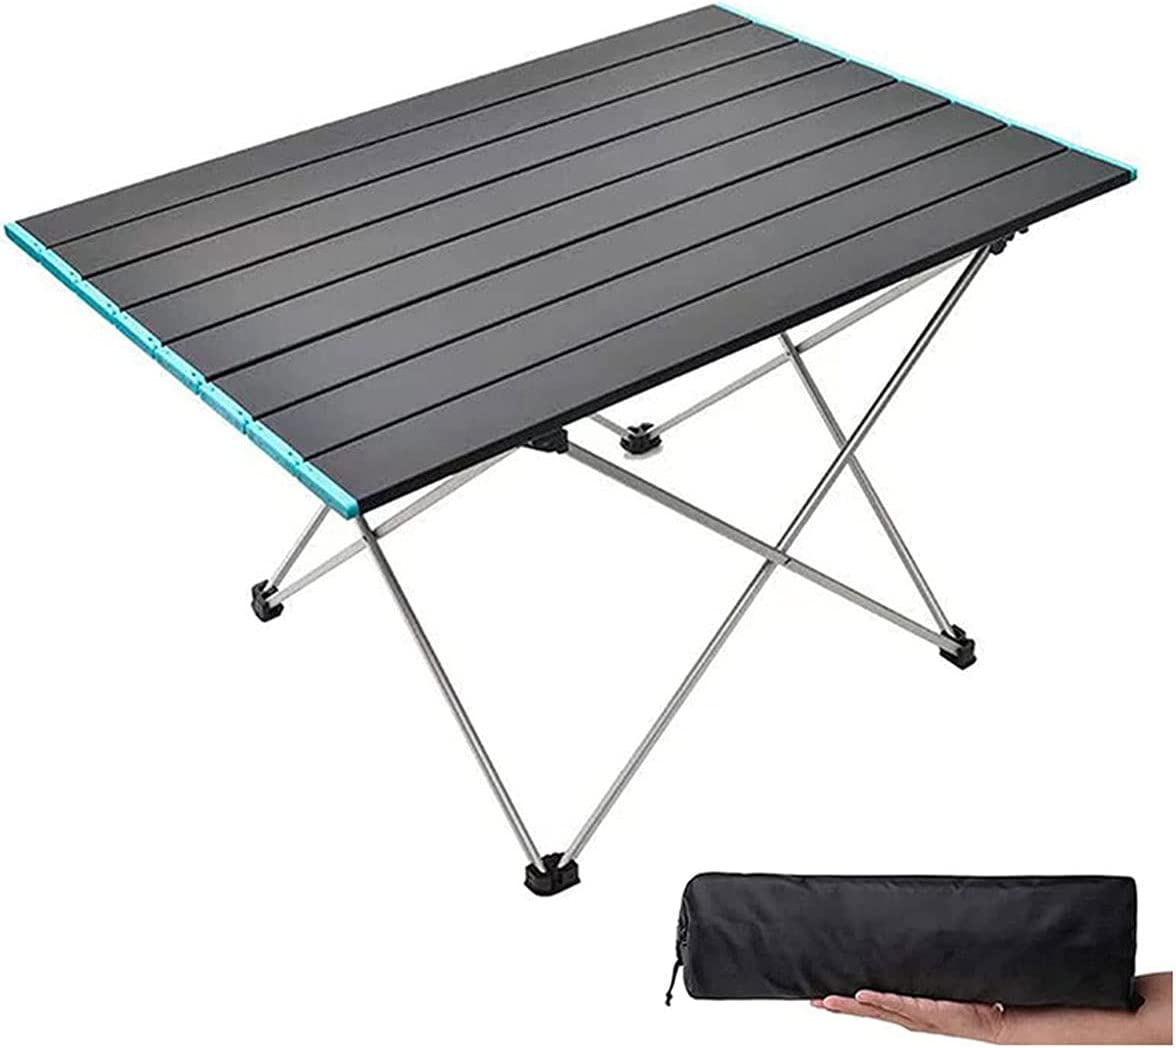 Electric oven Folding Table Portable Aluminum Don't miss the campaign Tampa Mall Collapsible